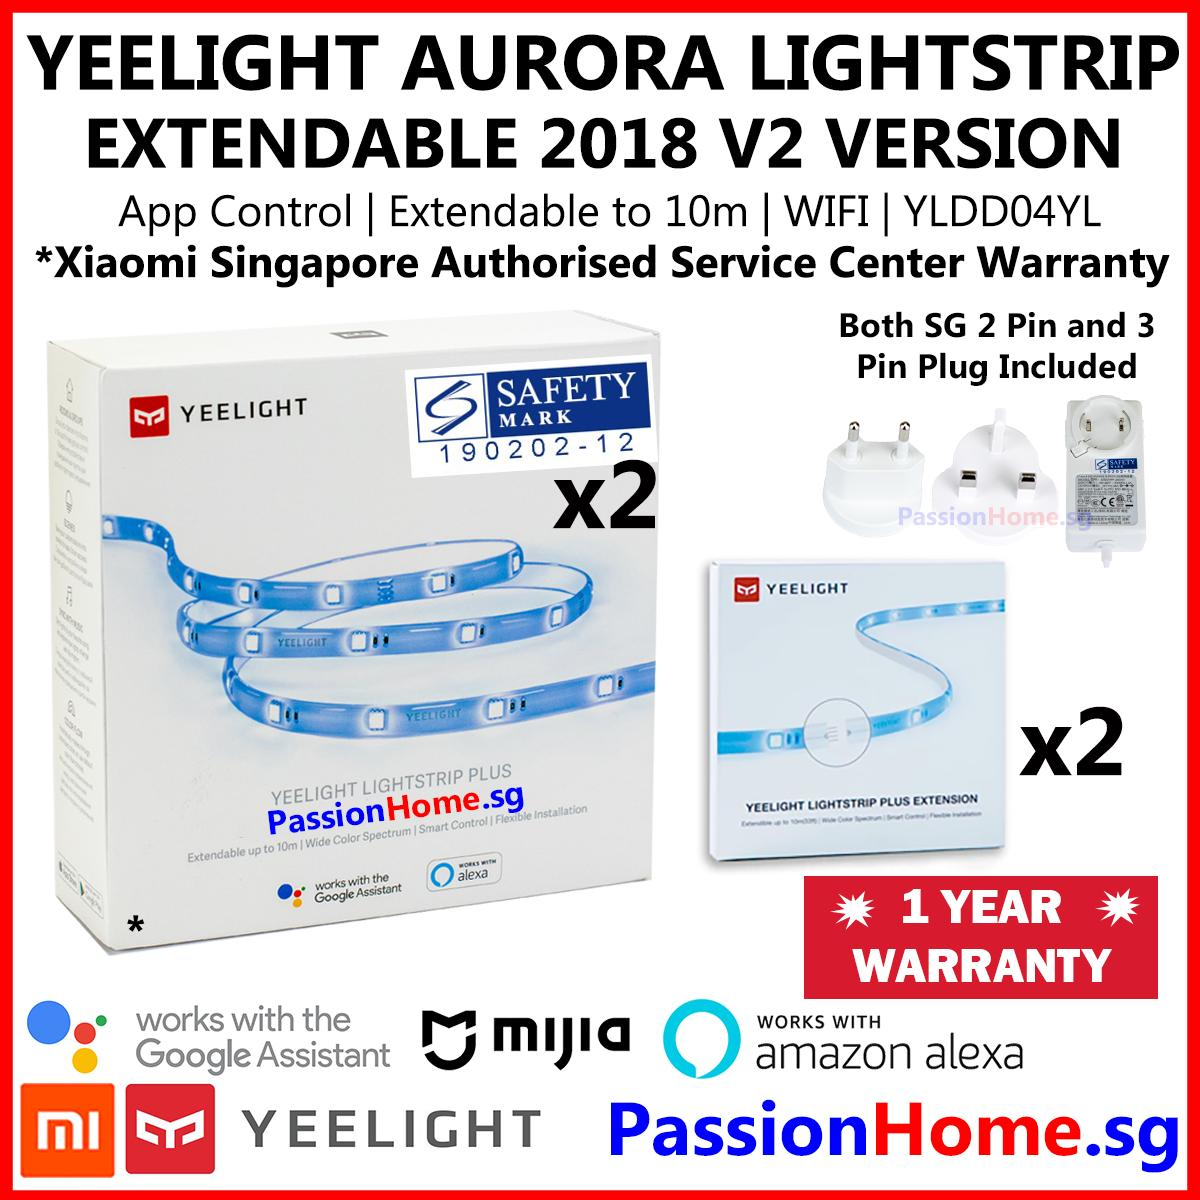 Yeelight Aurora Lightstrip Plus 2018 v2 - 2xStarter + 2x 1m Extension Bundle - WIFI LED Light Strip Meter Colour White - Xiaomi Mijia Smart Home Automation - (Works with Google Home Assistant Alexa Echo) - Mi Home / Yeelight App - Philips Hue Alternative